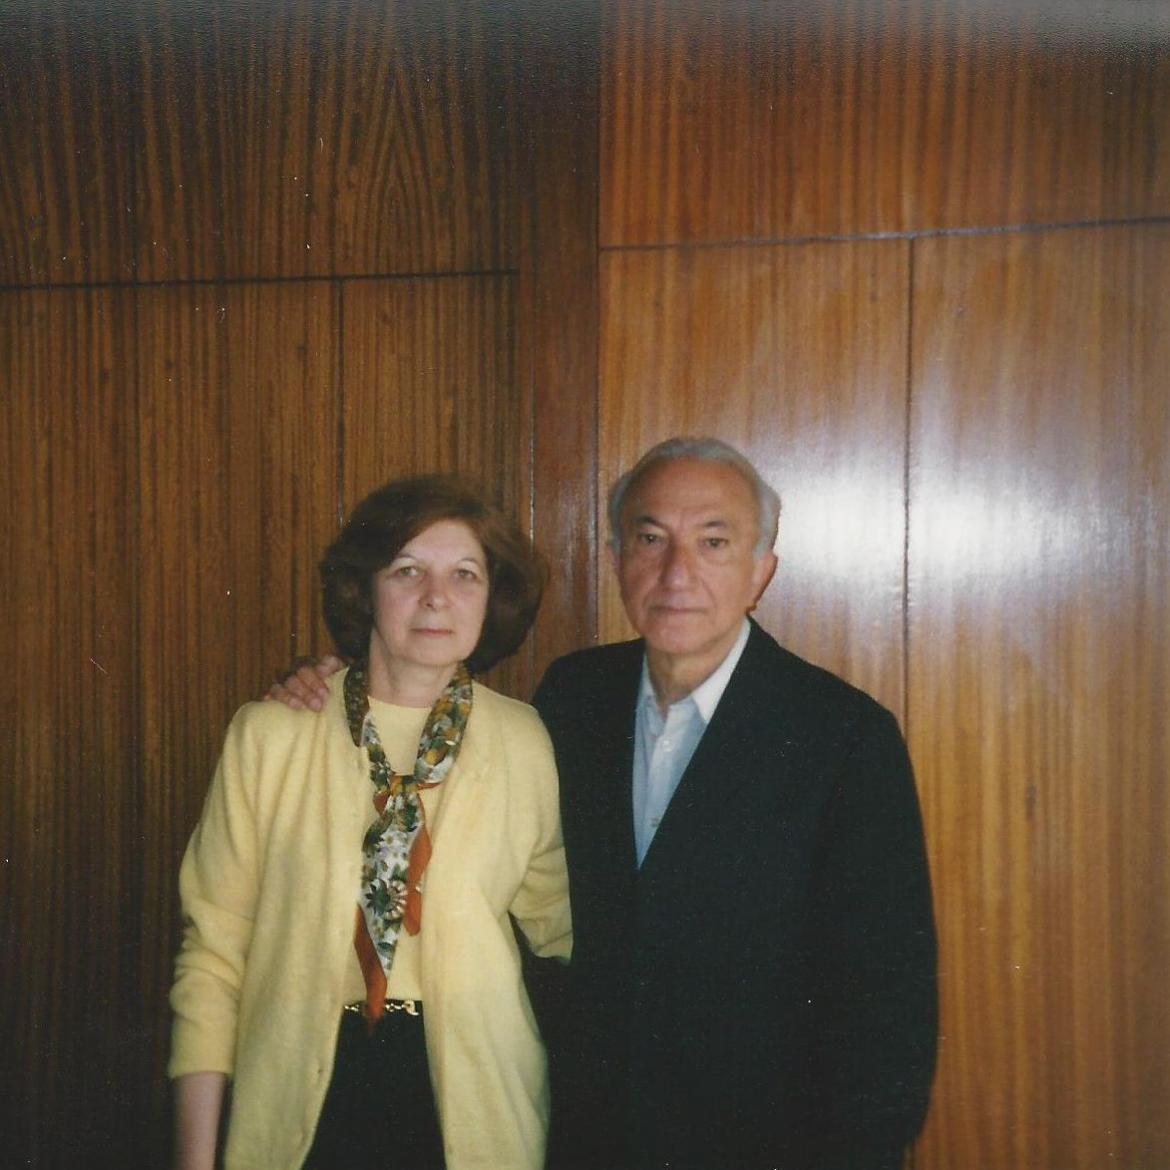 With Maria do Rosário de Sousa, Porto, 1998